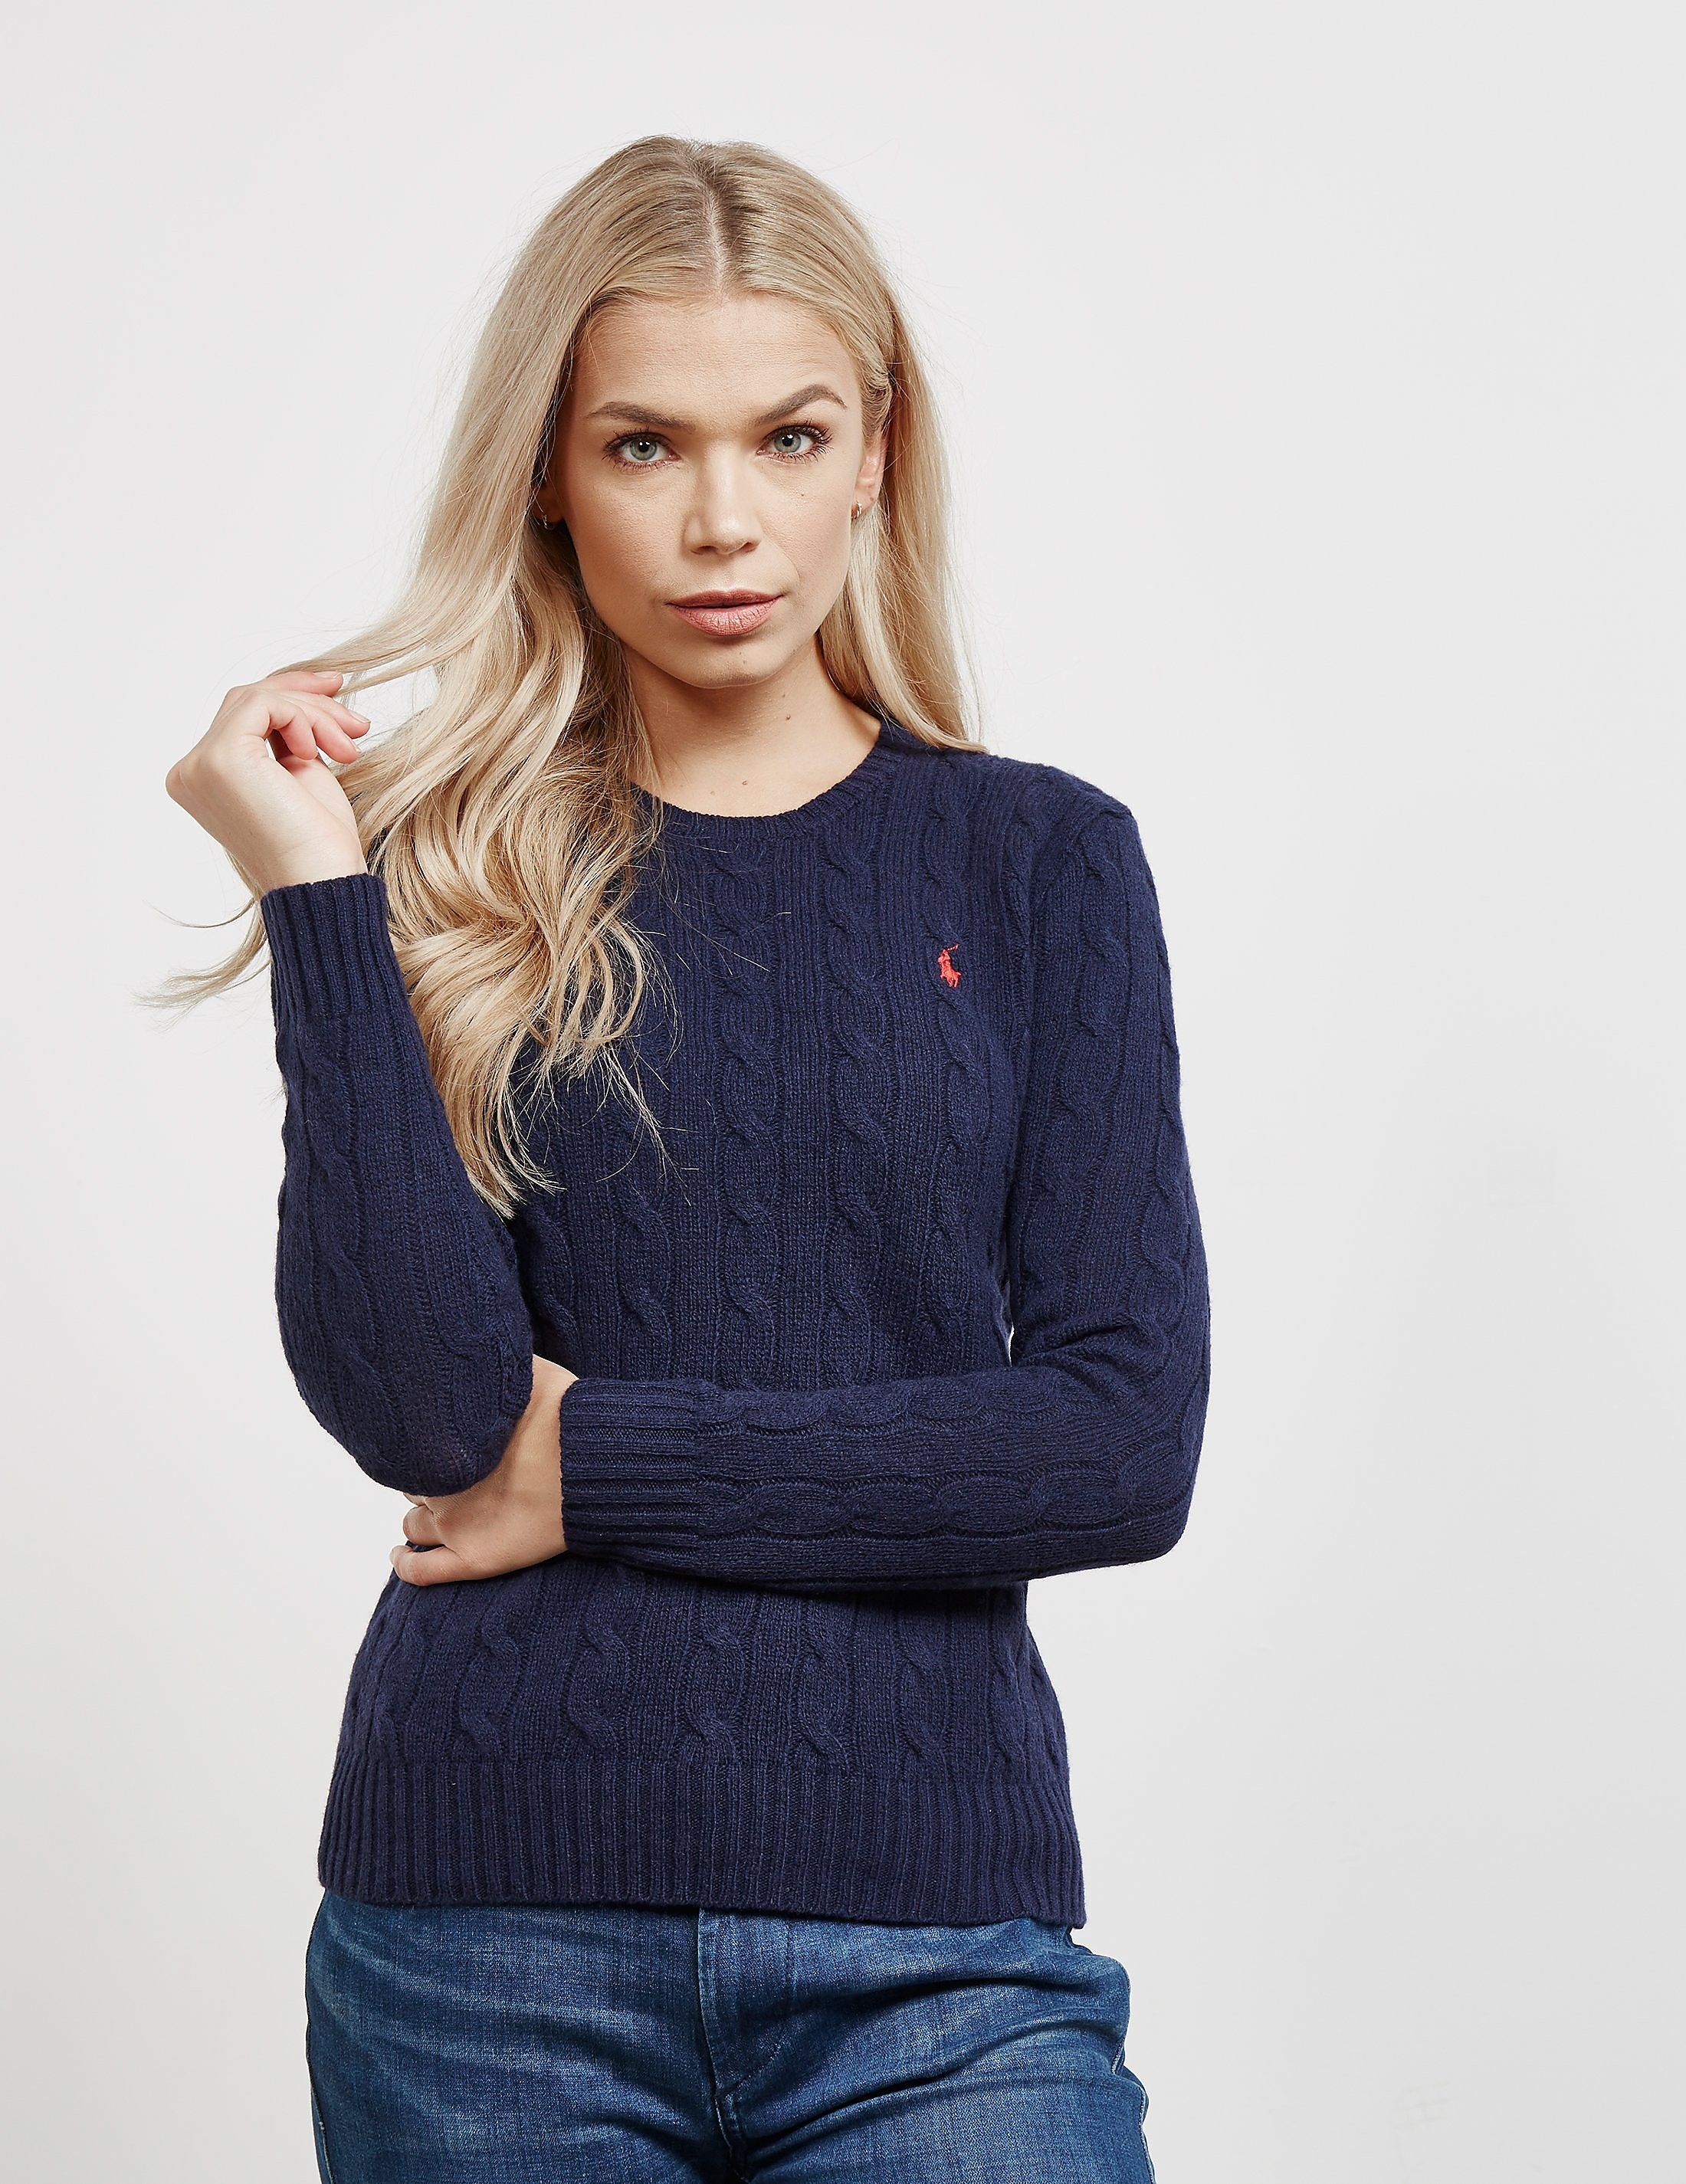 917f9e312bd4 Womens Polo Ralph Lauren Juliana Knitted Jumper Navy blue